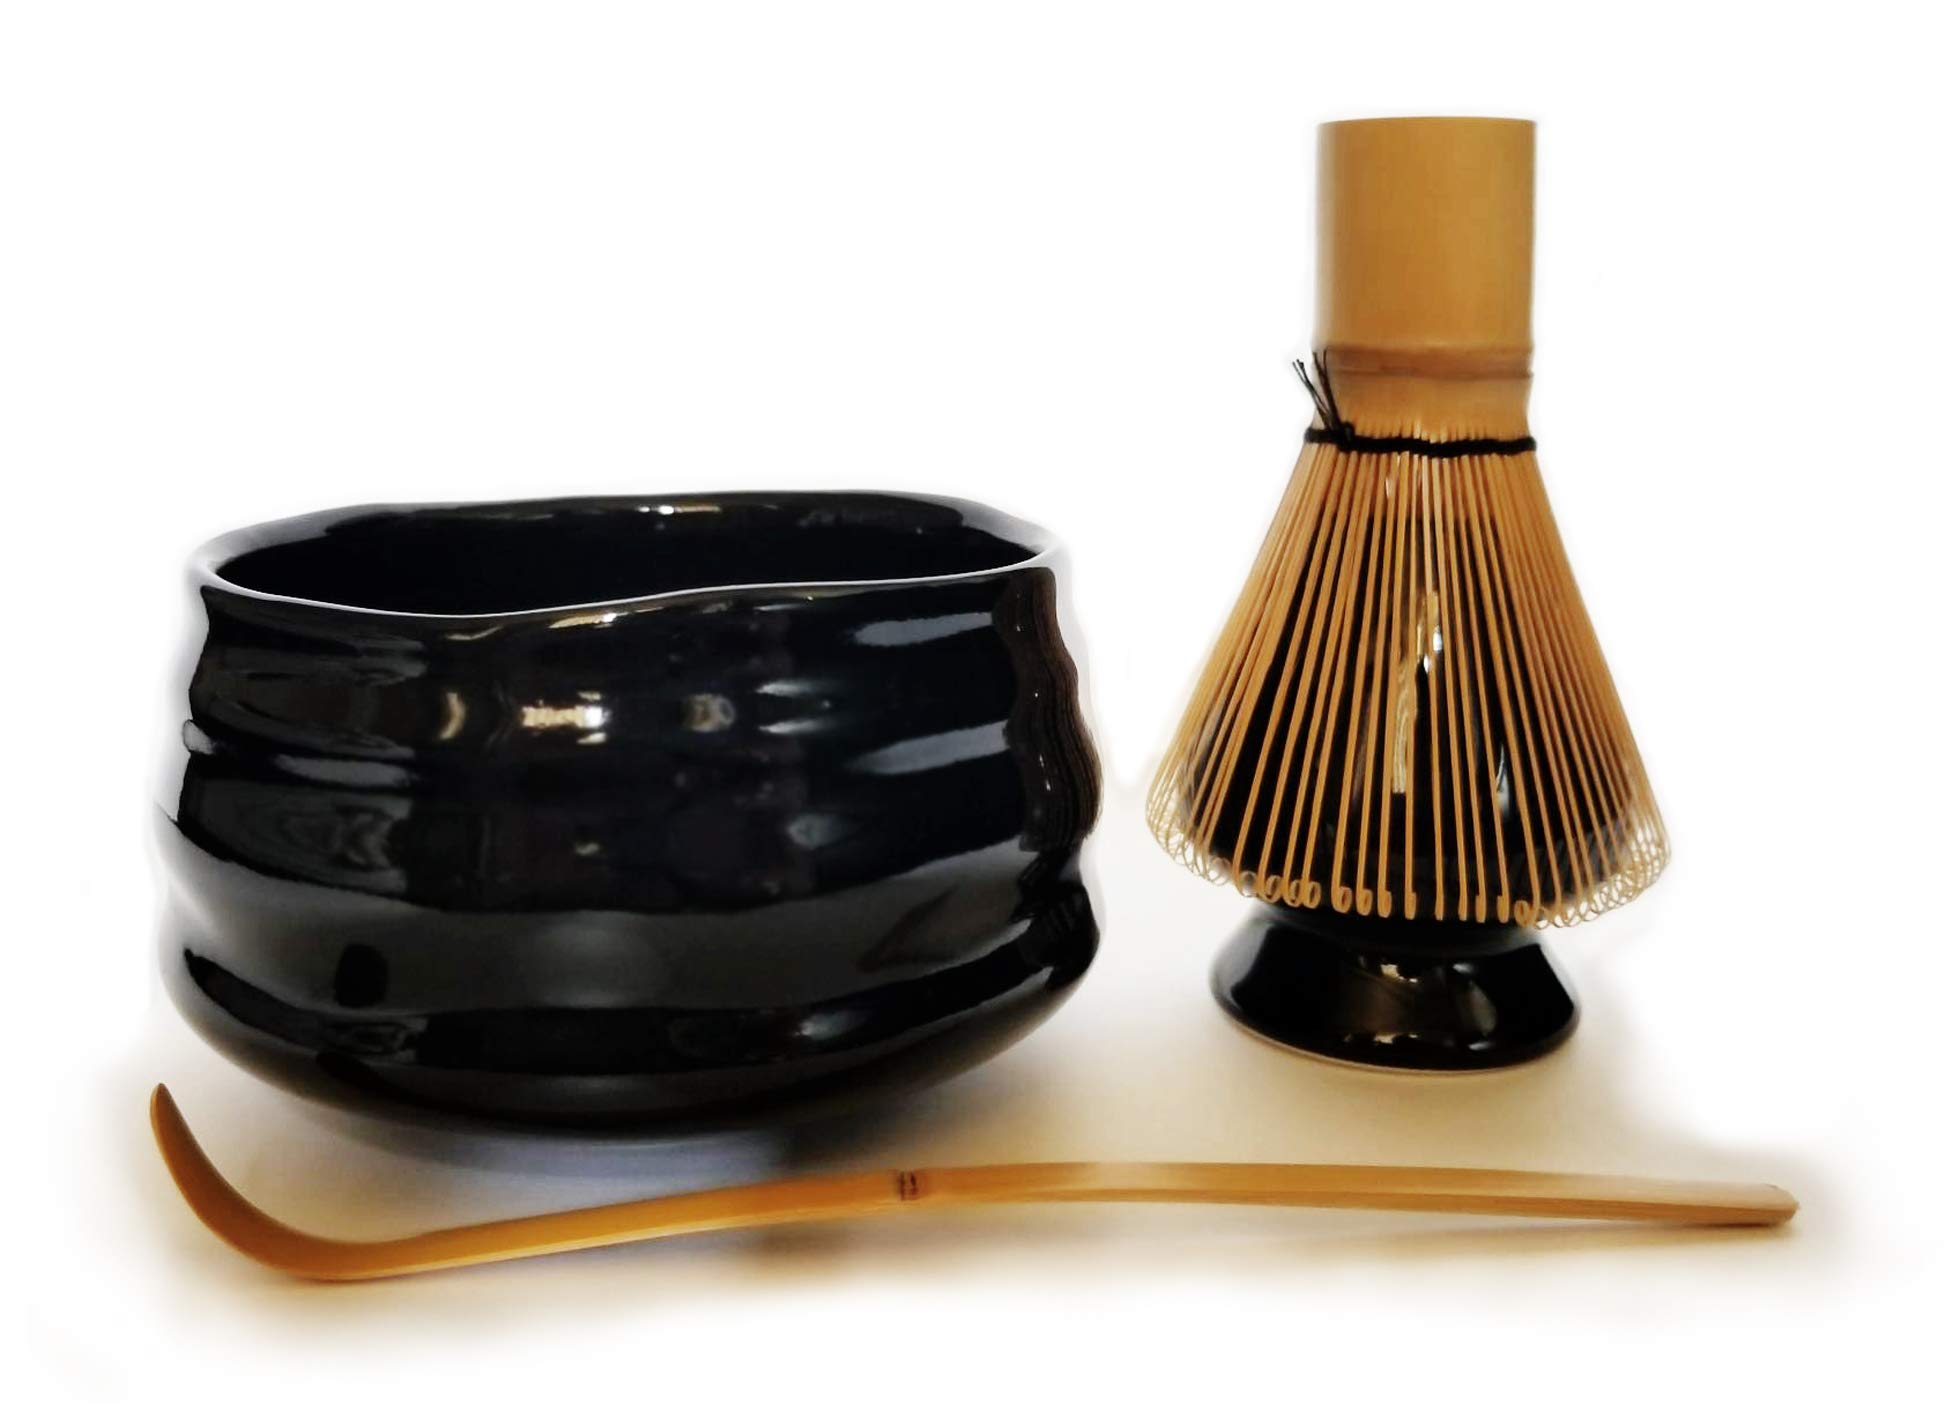 HARU MATCHA - Complete Matcha Tea Ceremony Gift Set - Black Matcha Chawan Bowl, Golden Bamboo Scoop (Chashaku), Bamboo Whisk (100 tate), and Black Whisk Holder